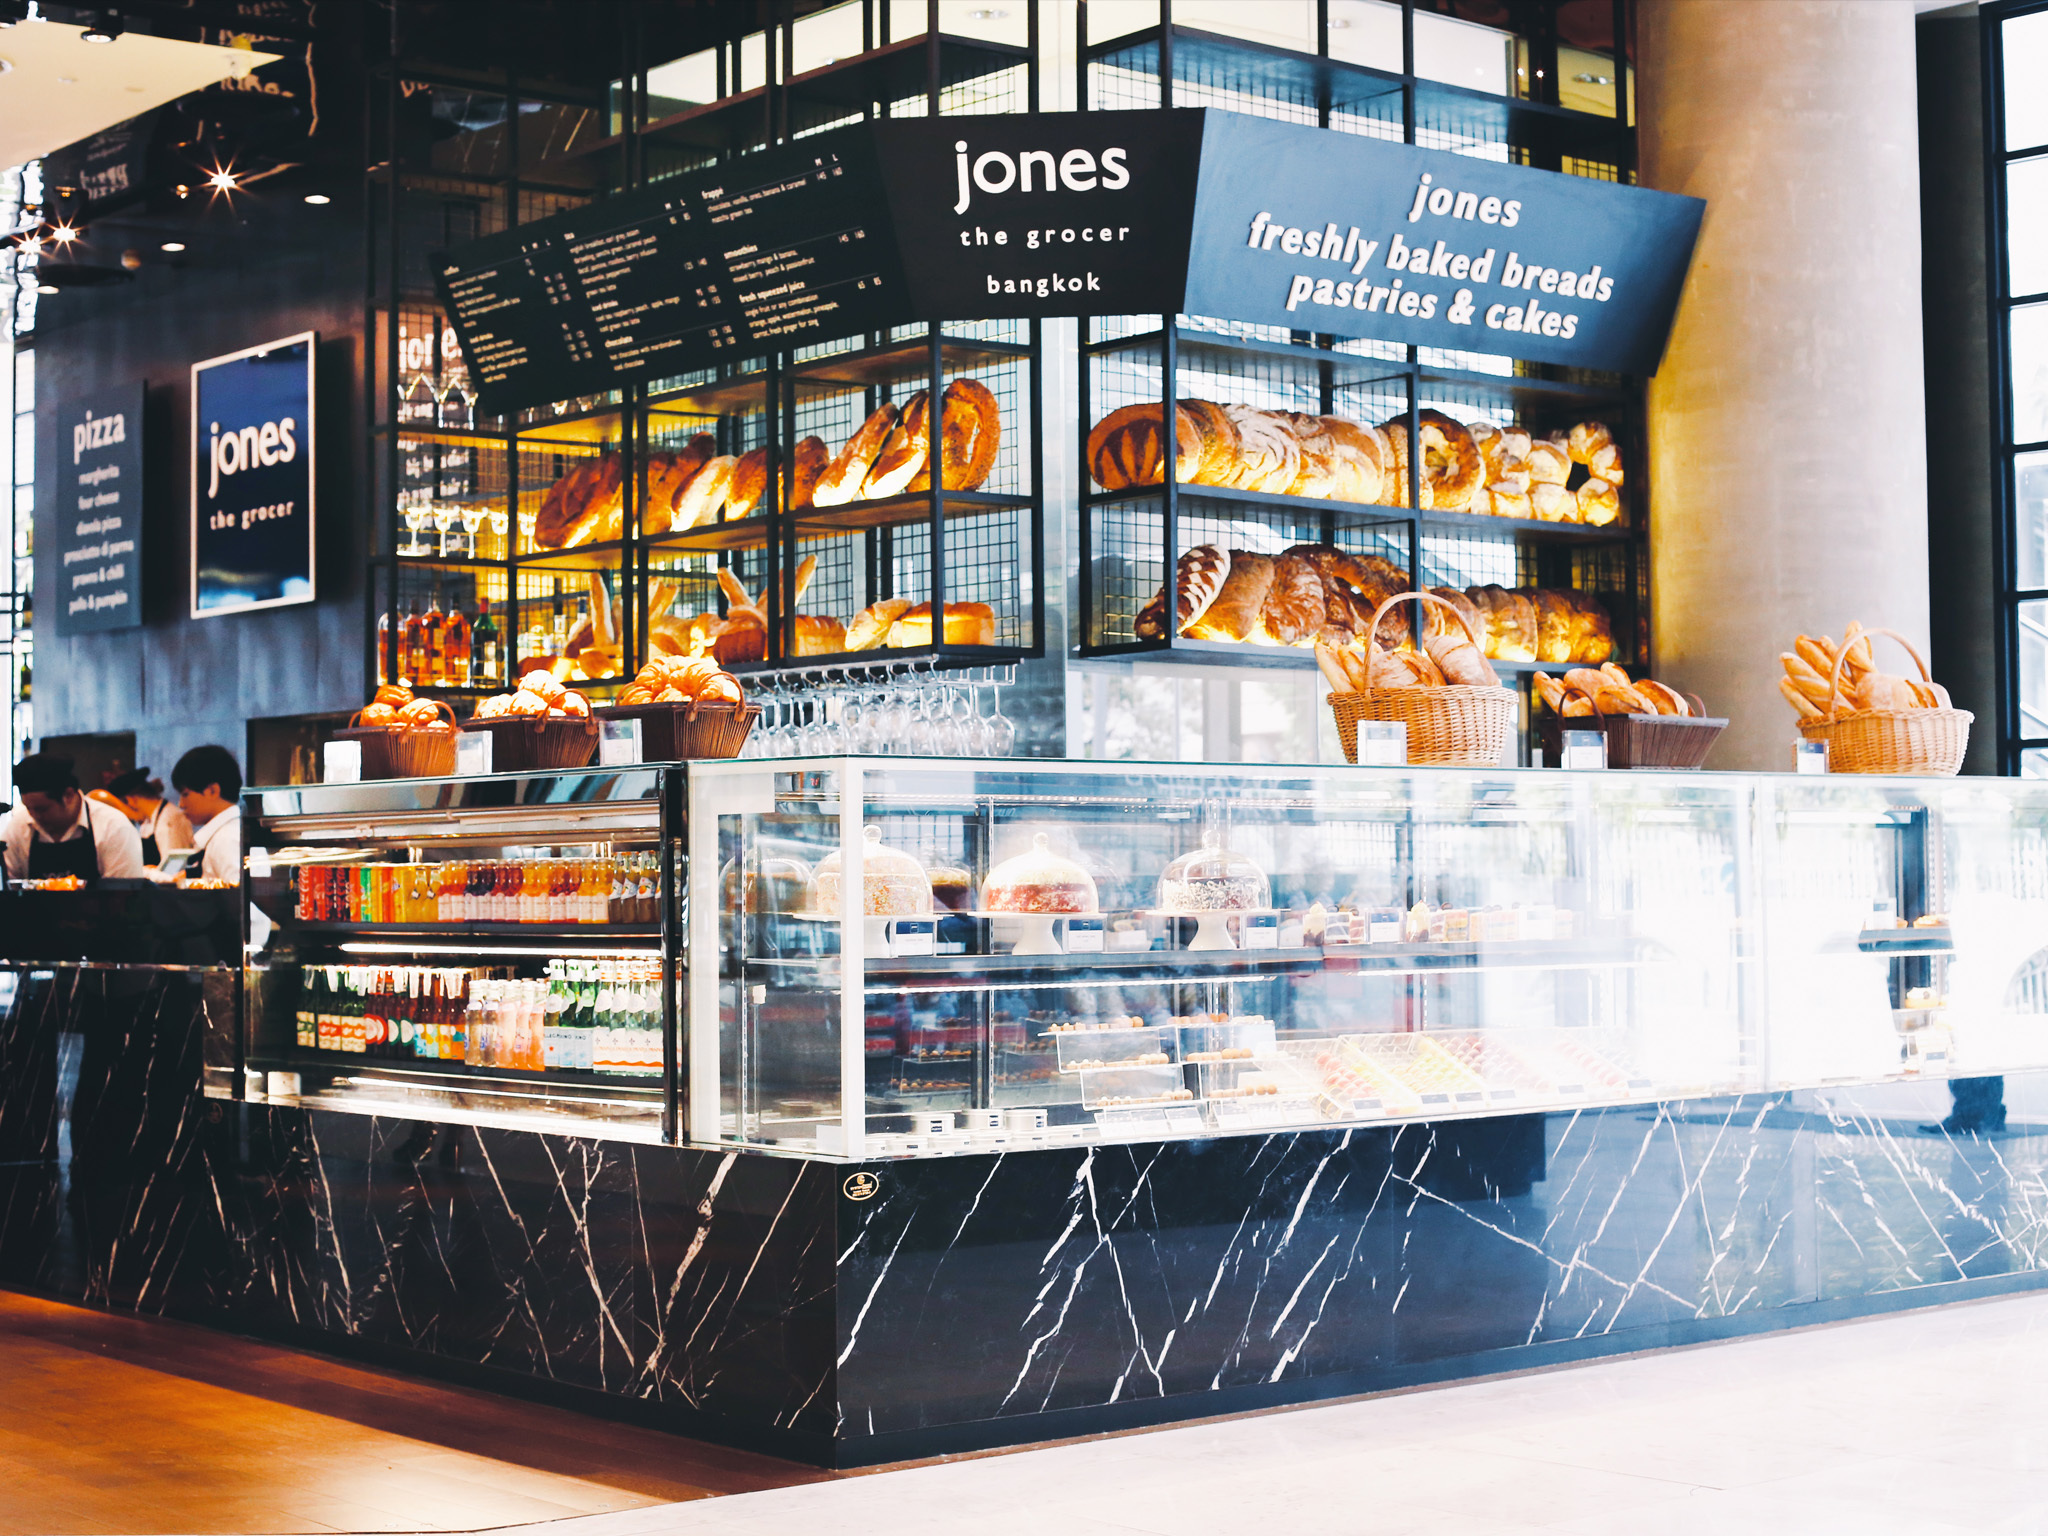 International Restaurant at jones the grocer